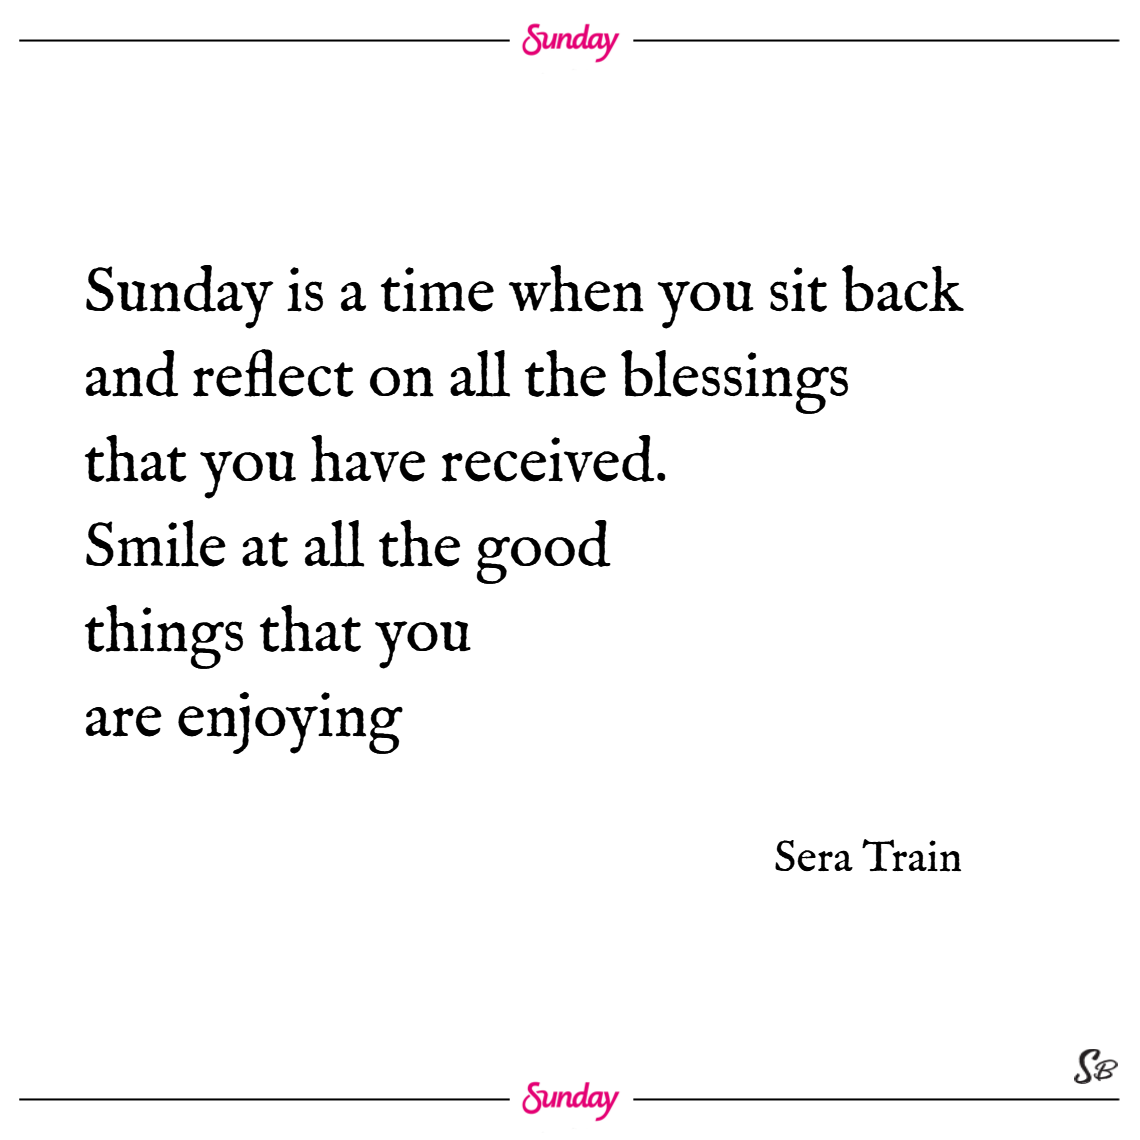 Sunday is a time when you sit back and reflect on all the blessings that you have received. smile at all the good things that you are enjoying. – sera train sunday quotes